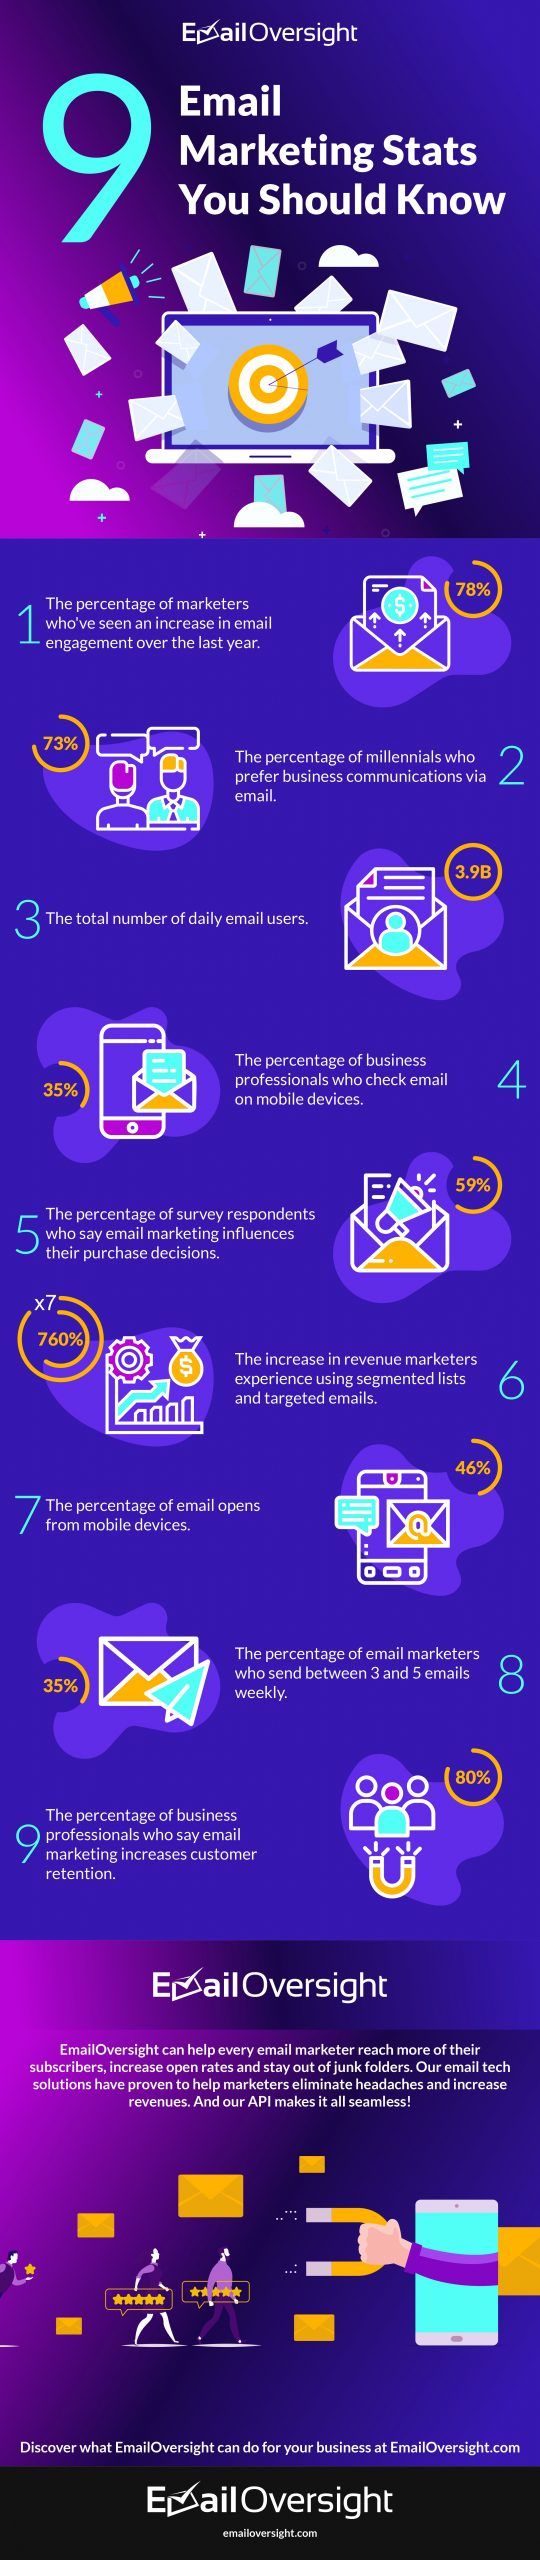 9 Email Marketing Stats You Should Know